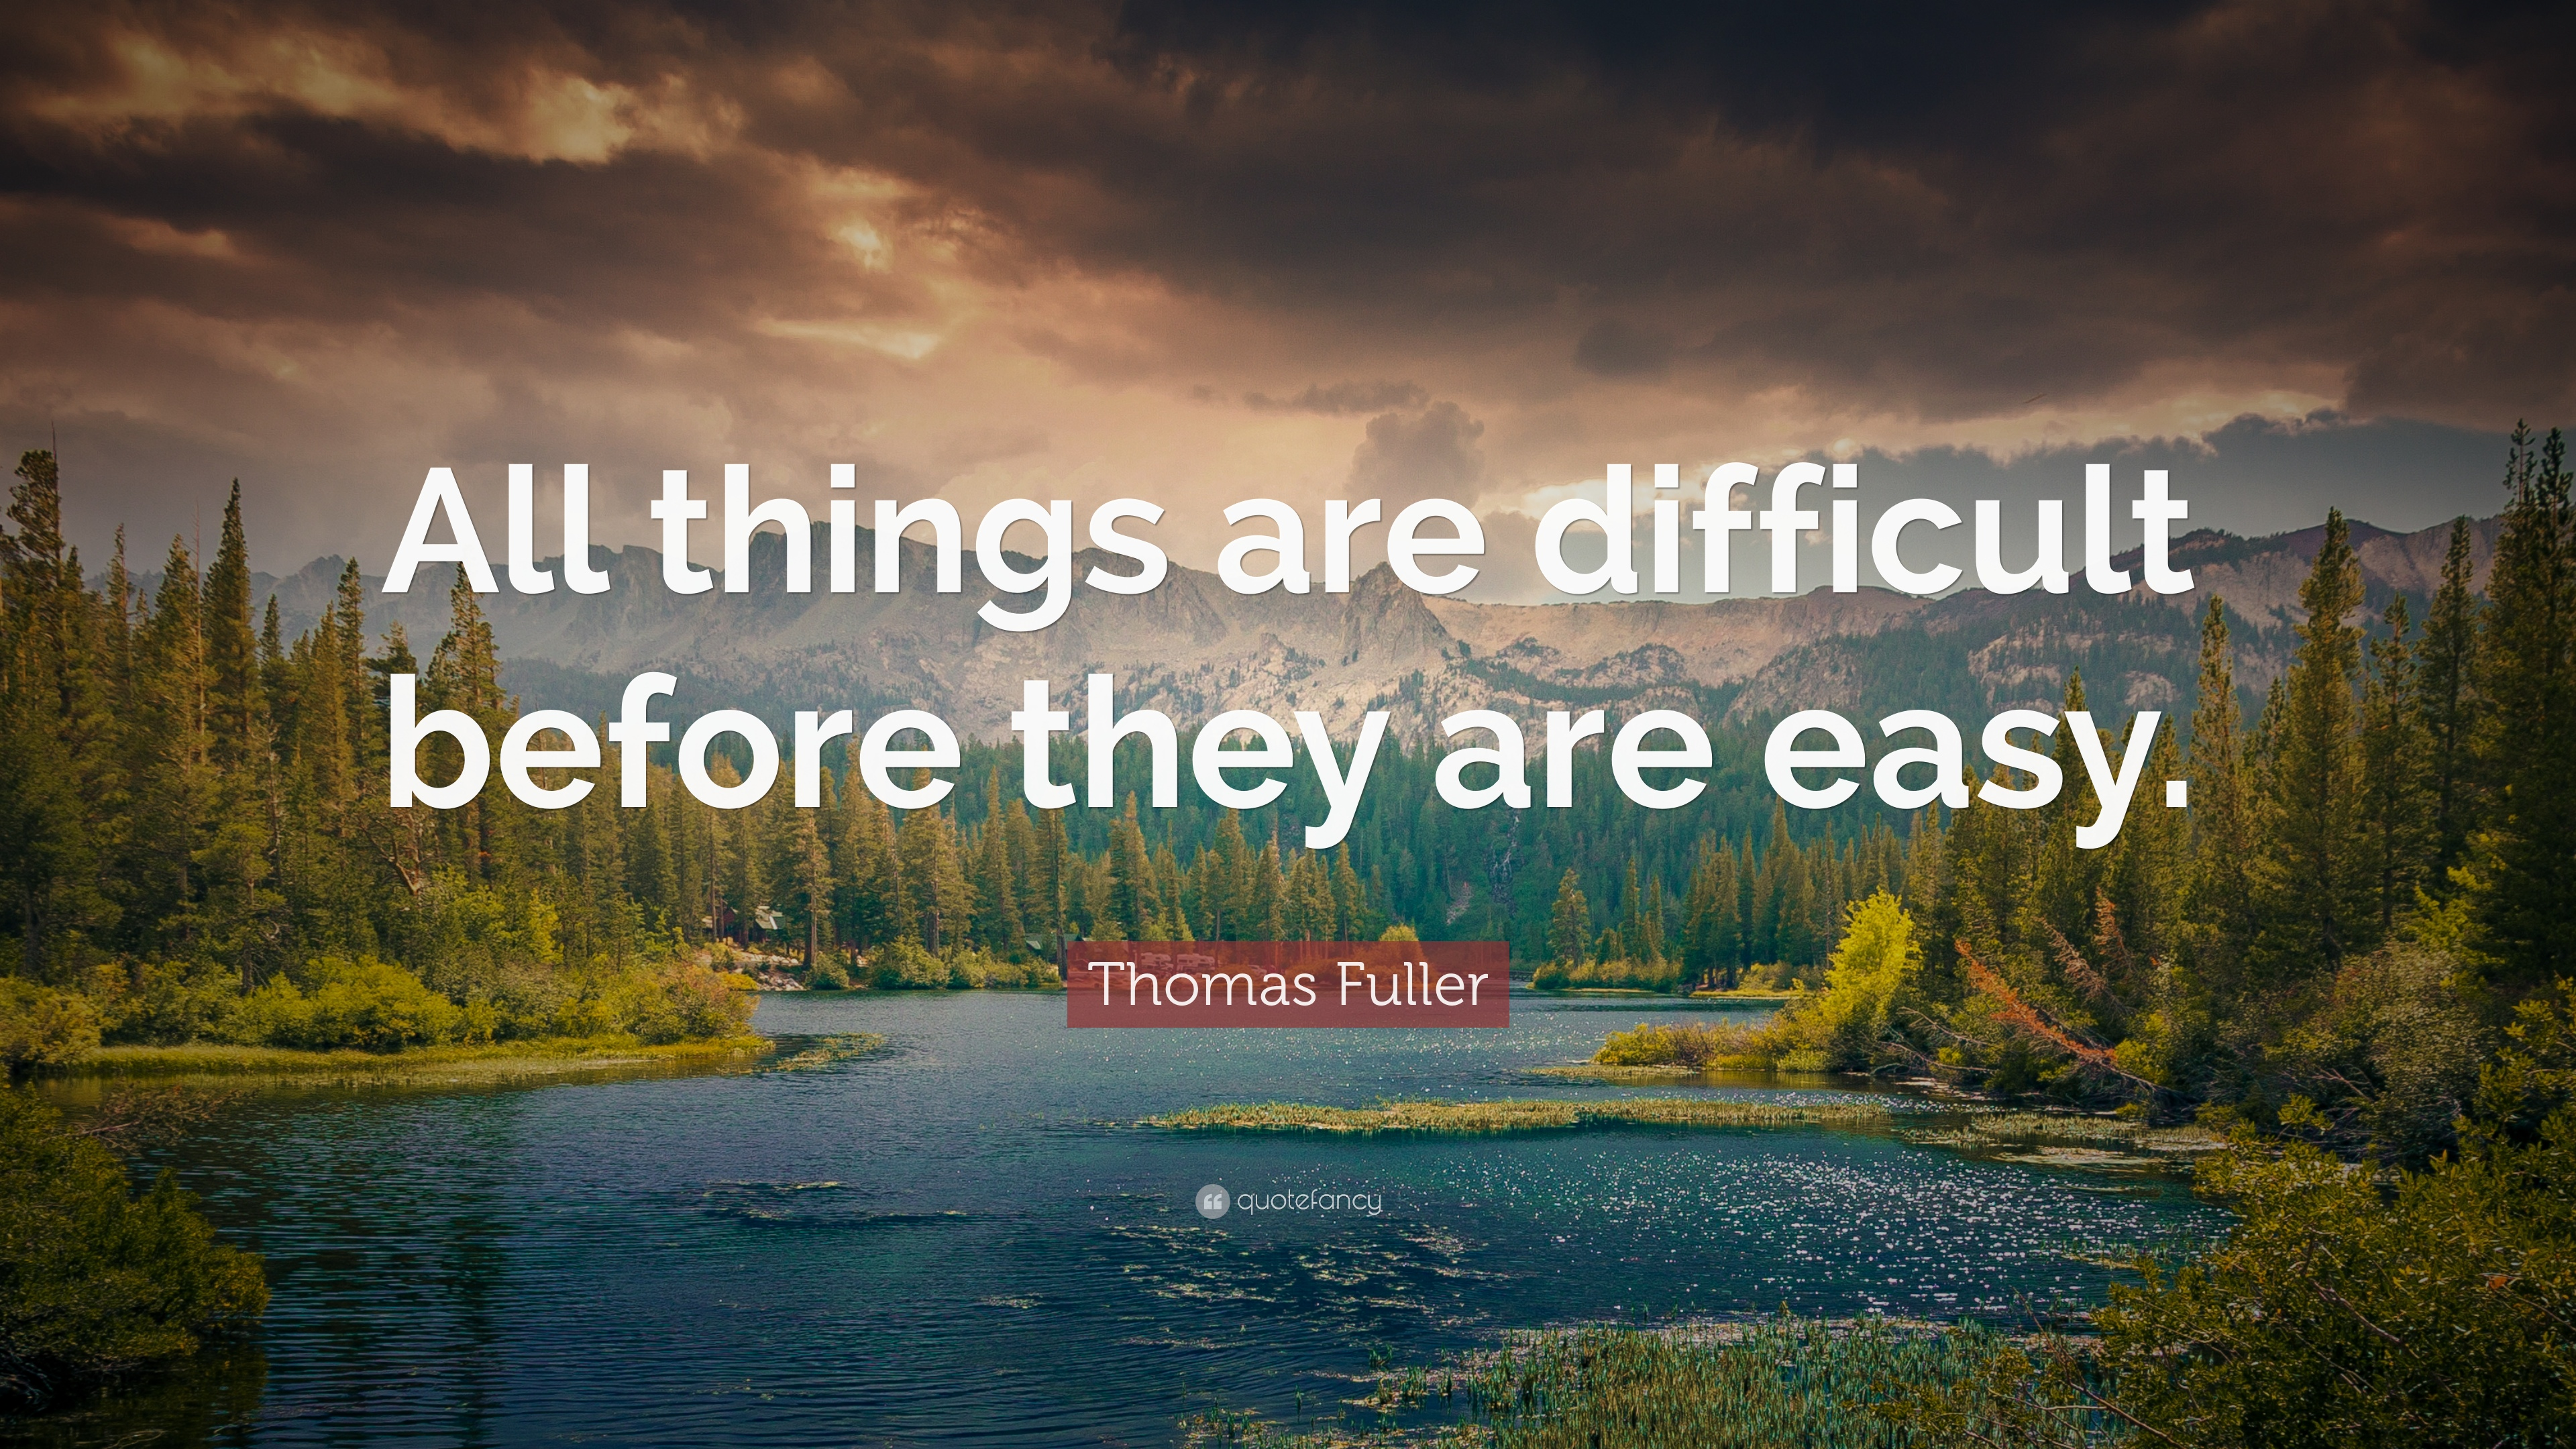 53 Wallpapers. Positive Quotes: U201cAll Things Are Difficult Before They Are  Easy.u201d U2014 Thomas